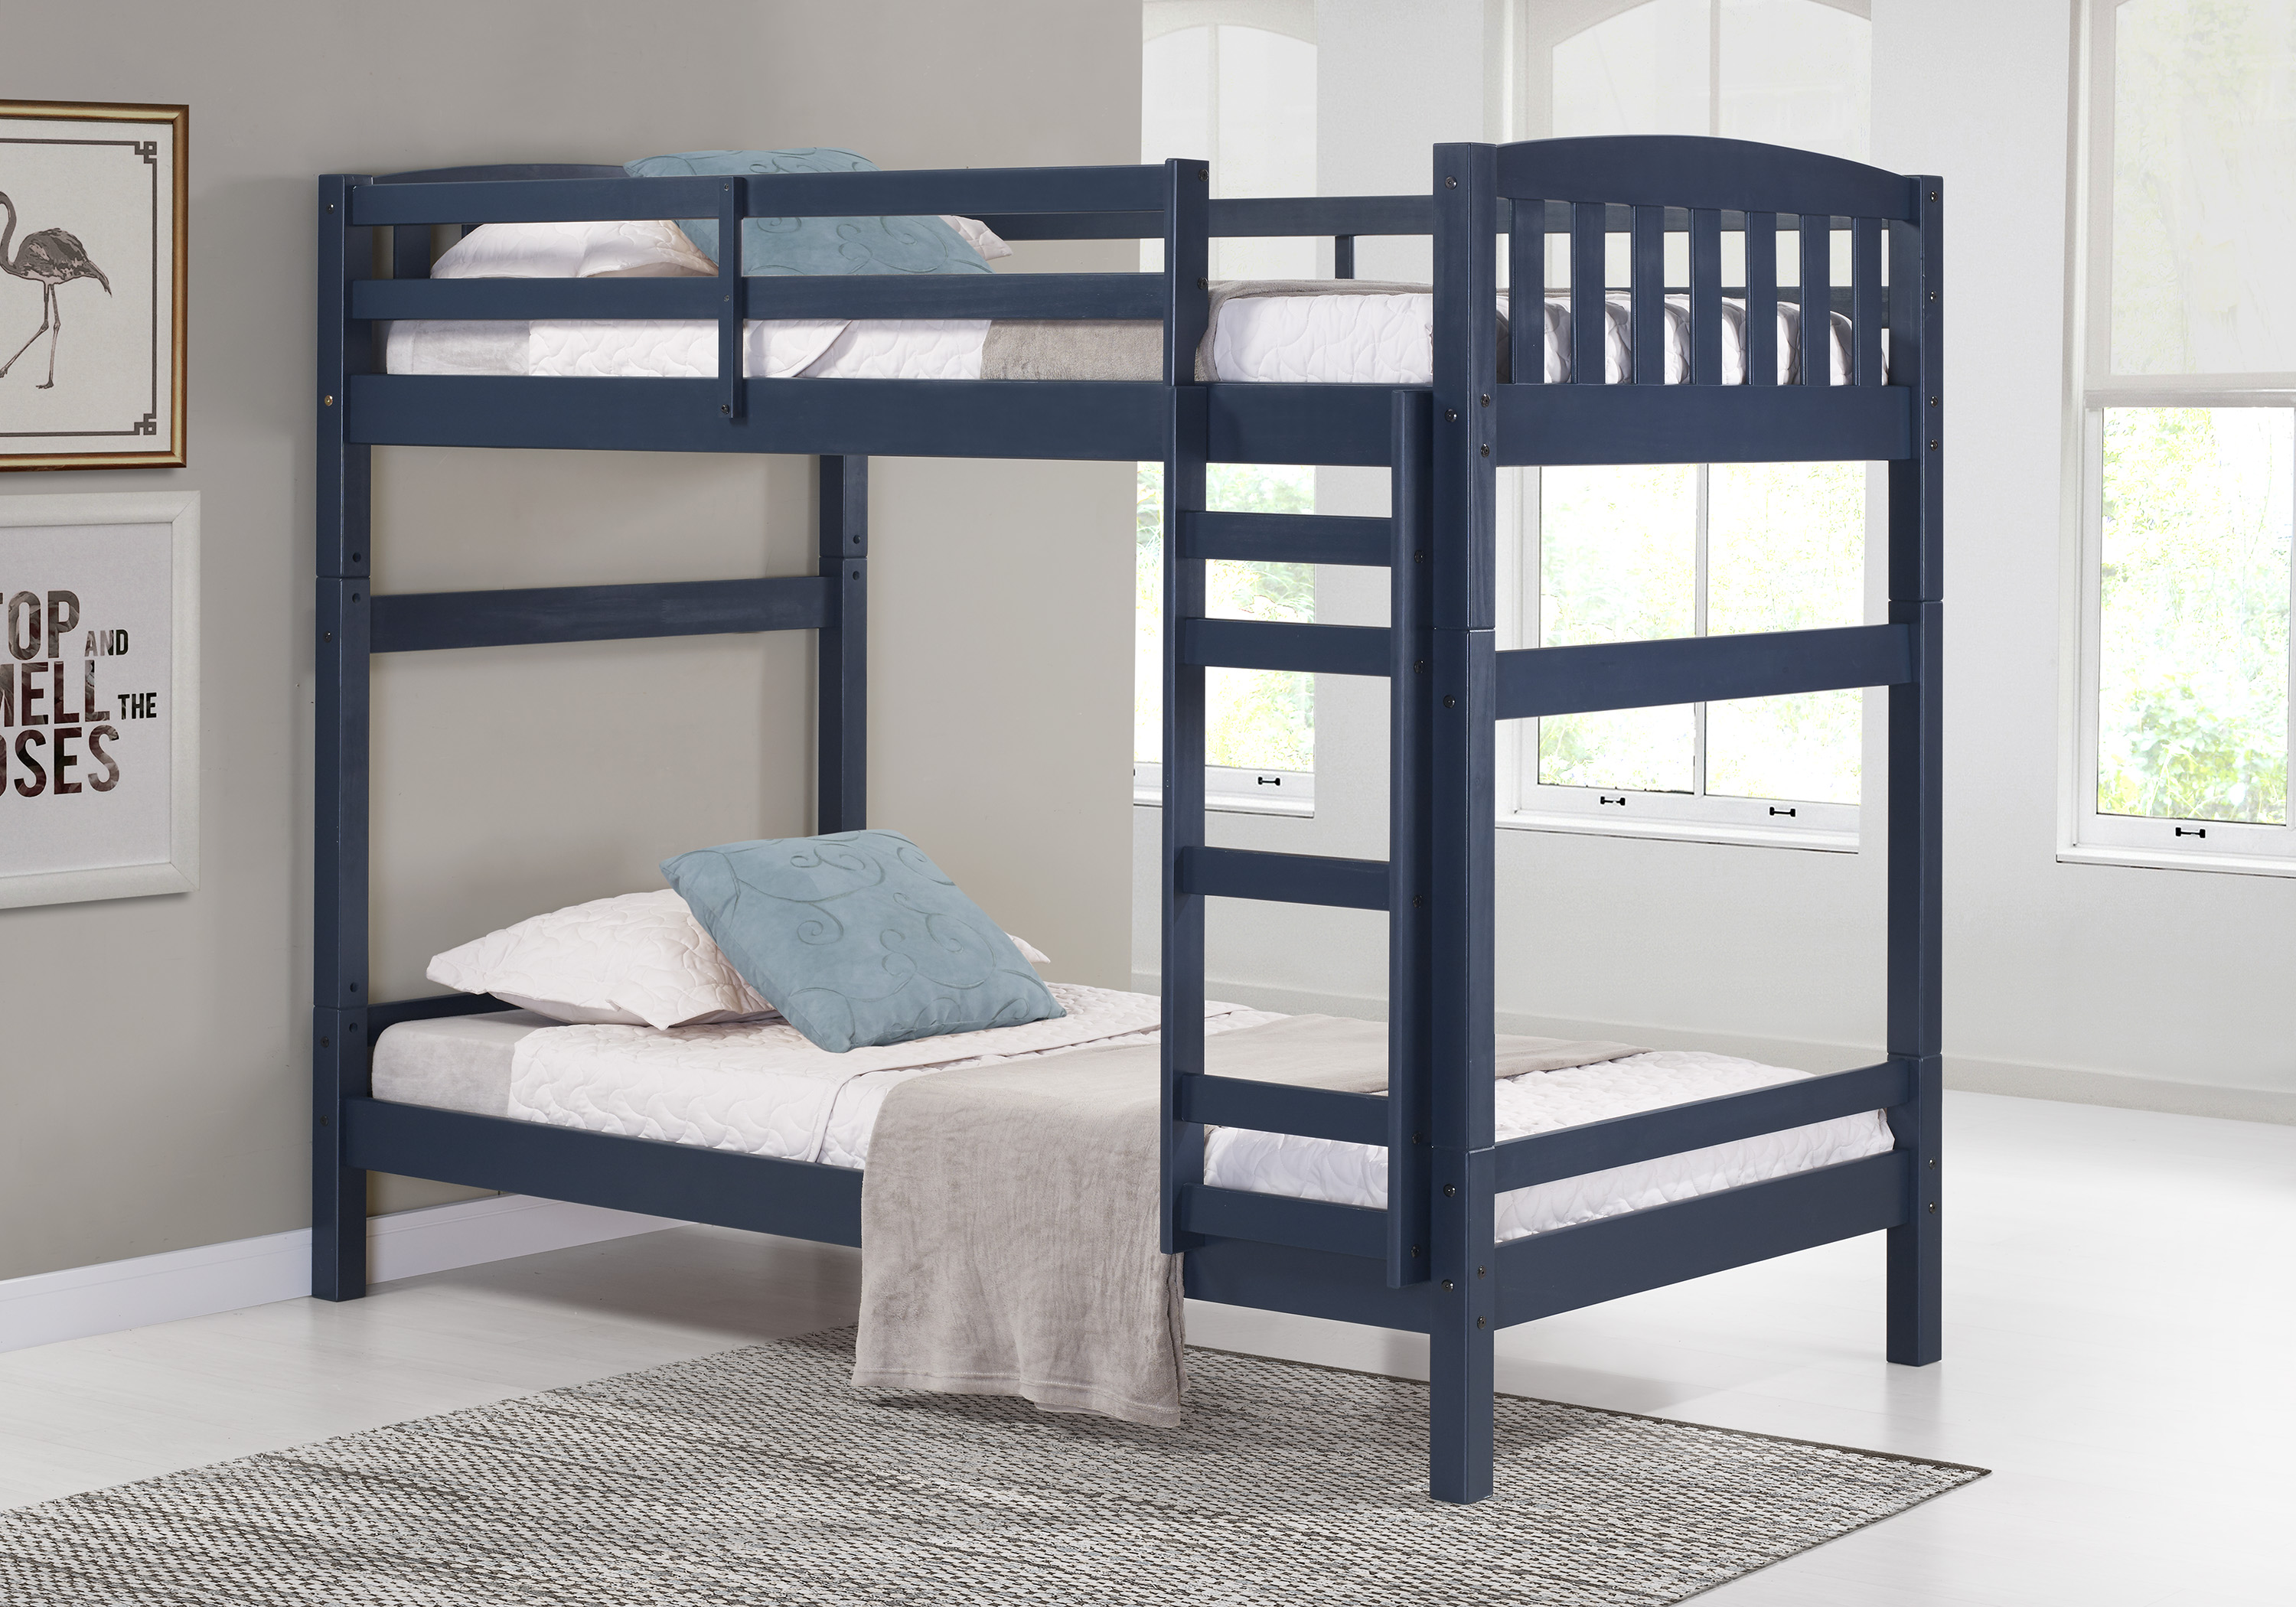 Simmons 5-in-1 Convertible Bunk Bed, Multiple Colors by United Furniture Industries